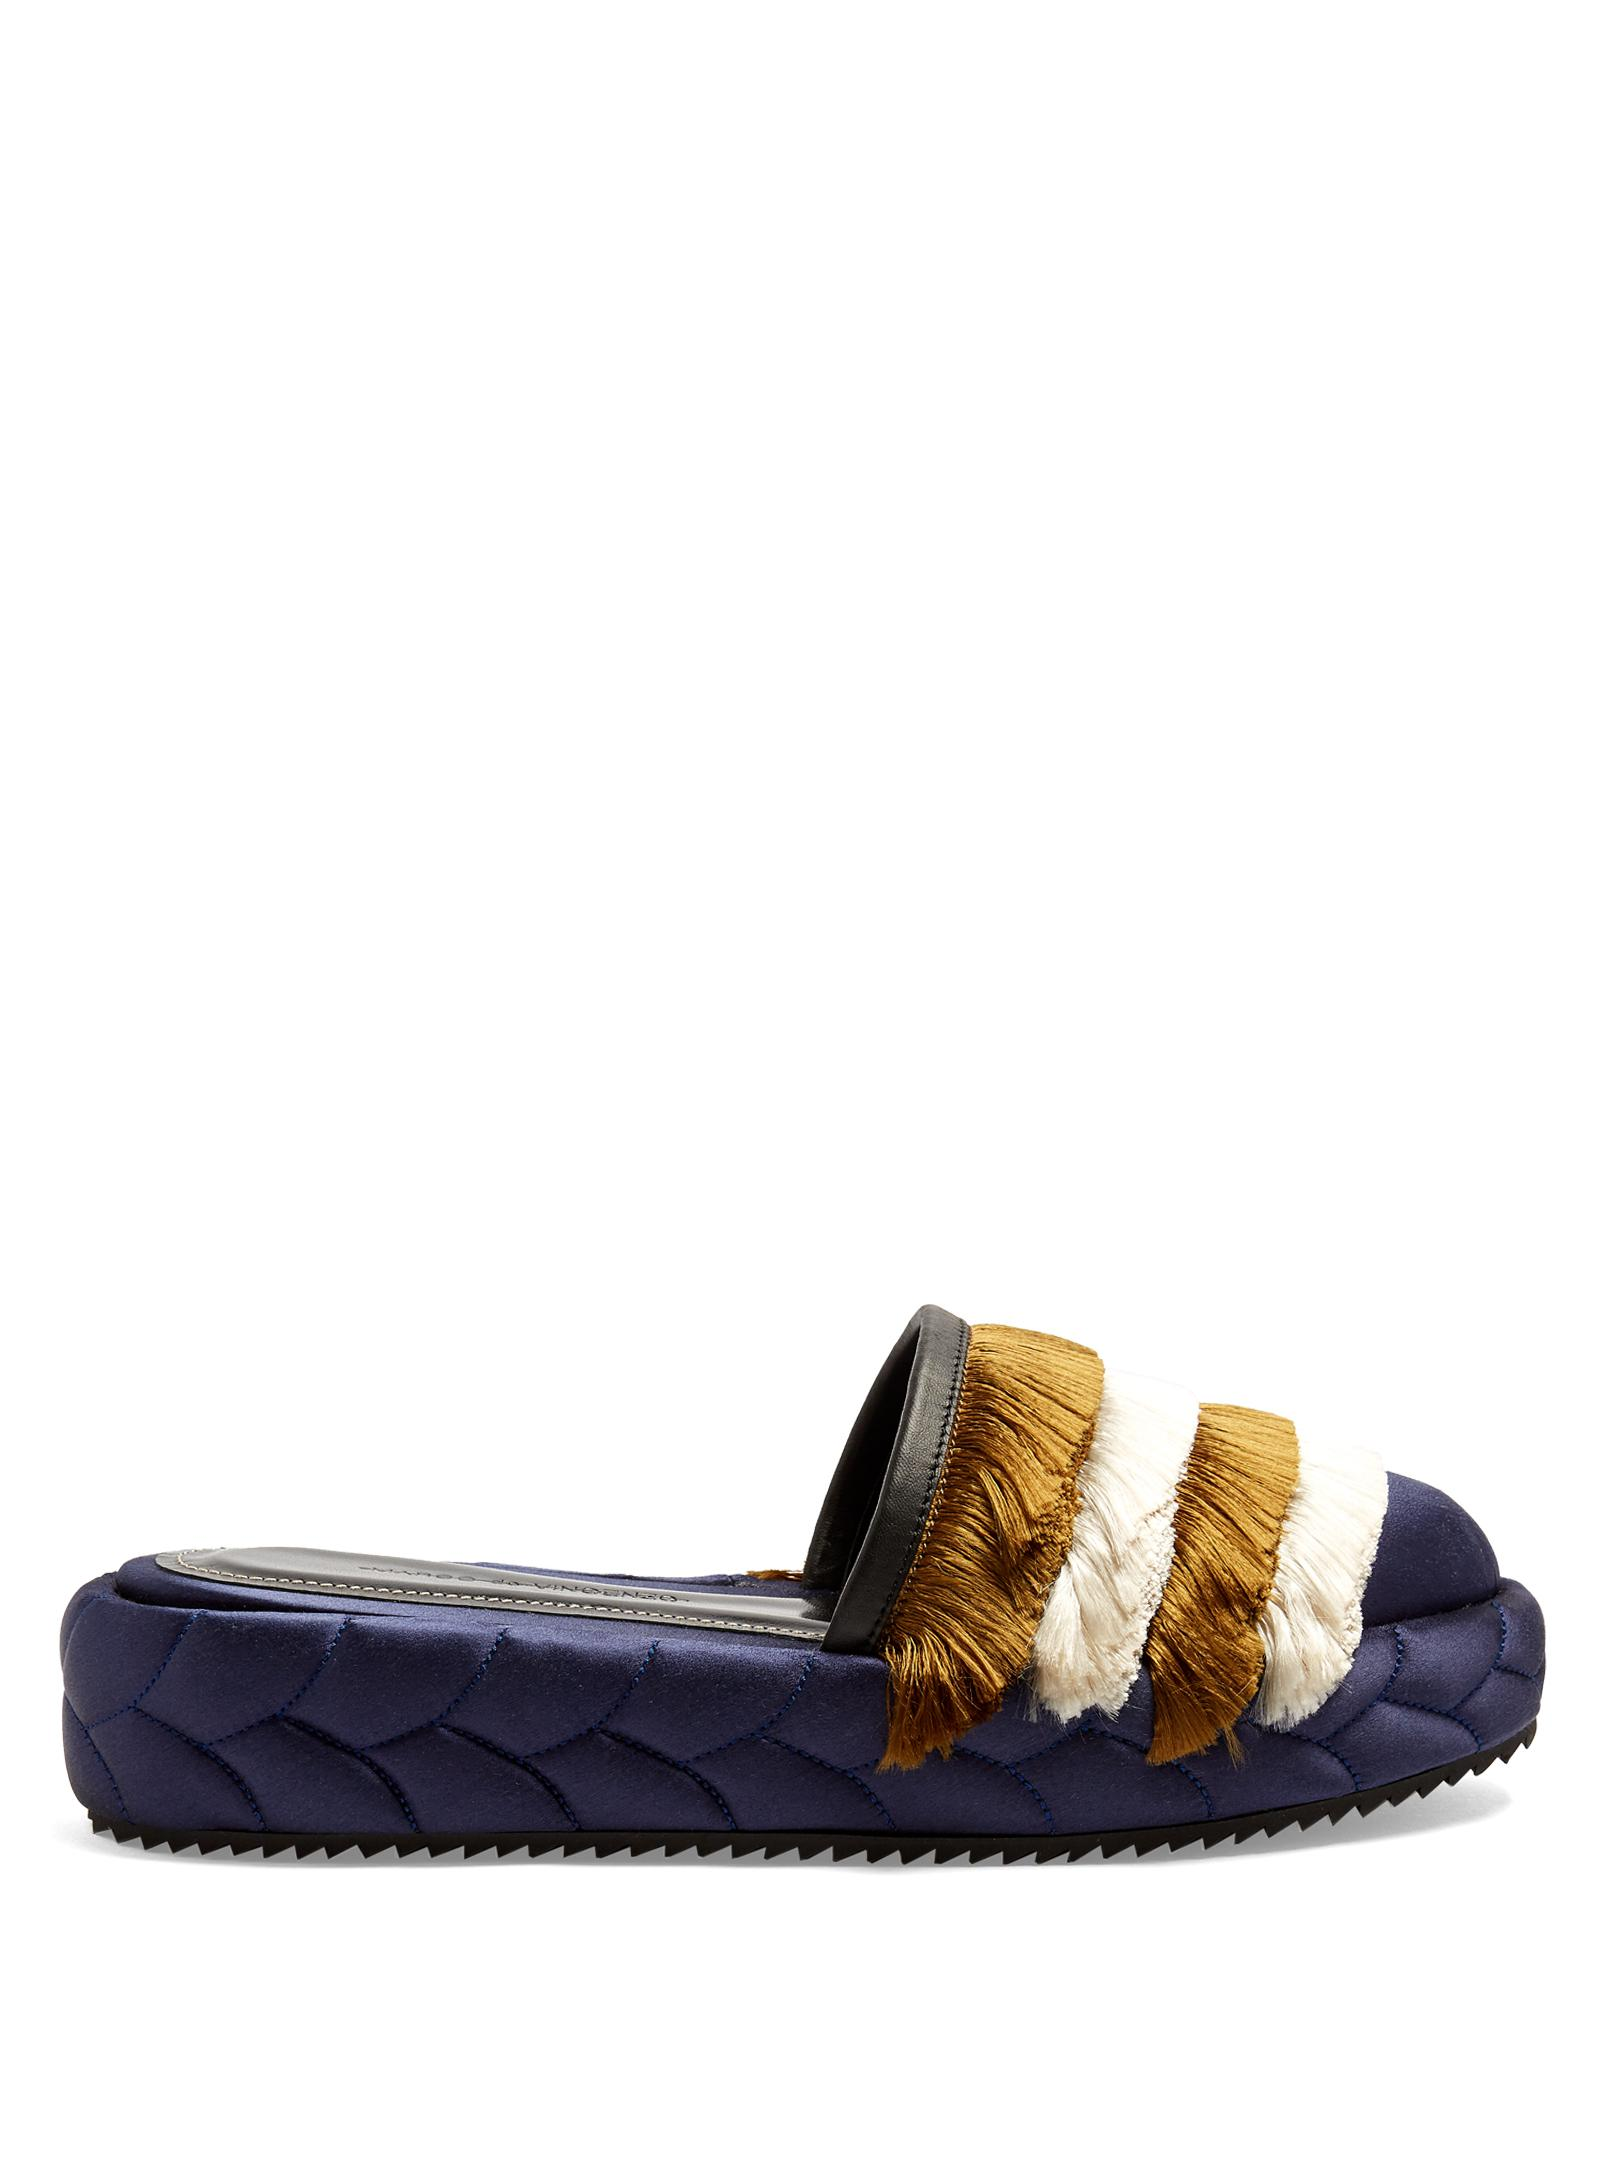 quilted fringed mules - Green Marco De Vincenzo F2wAy5j77X